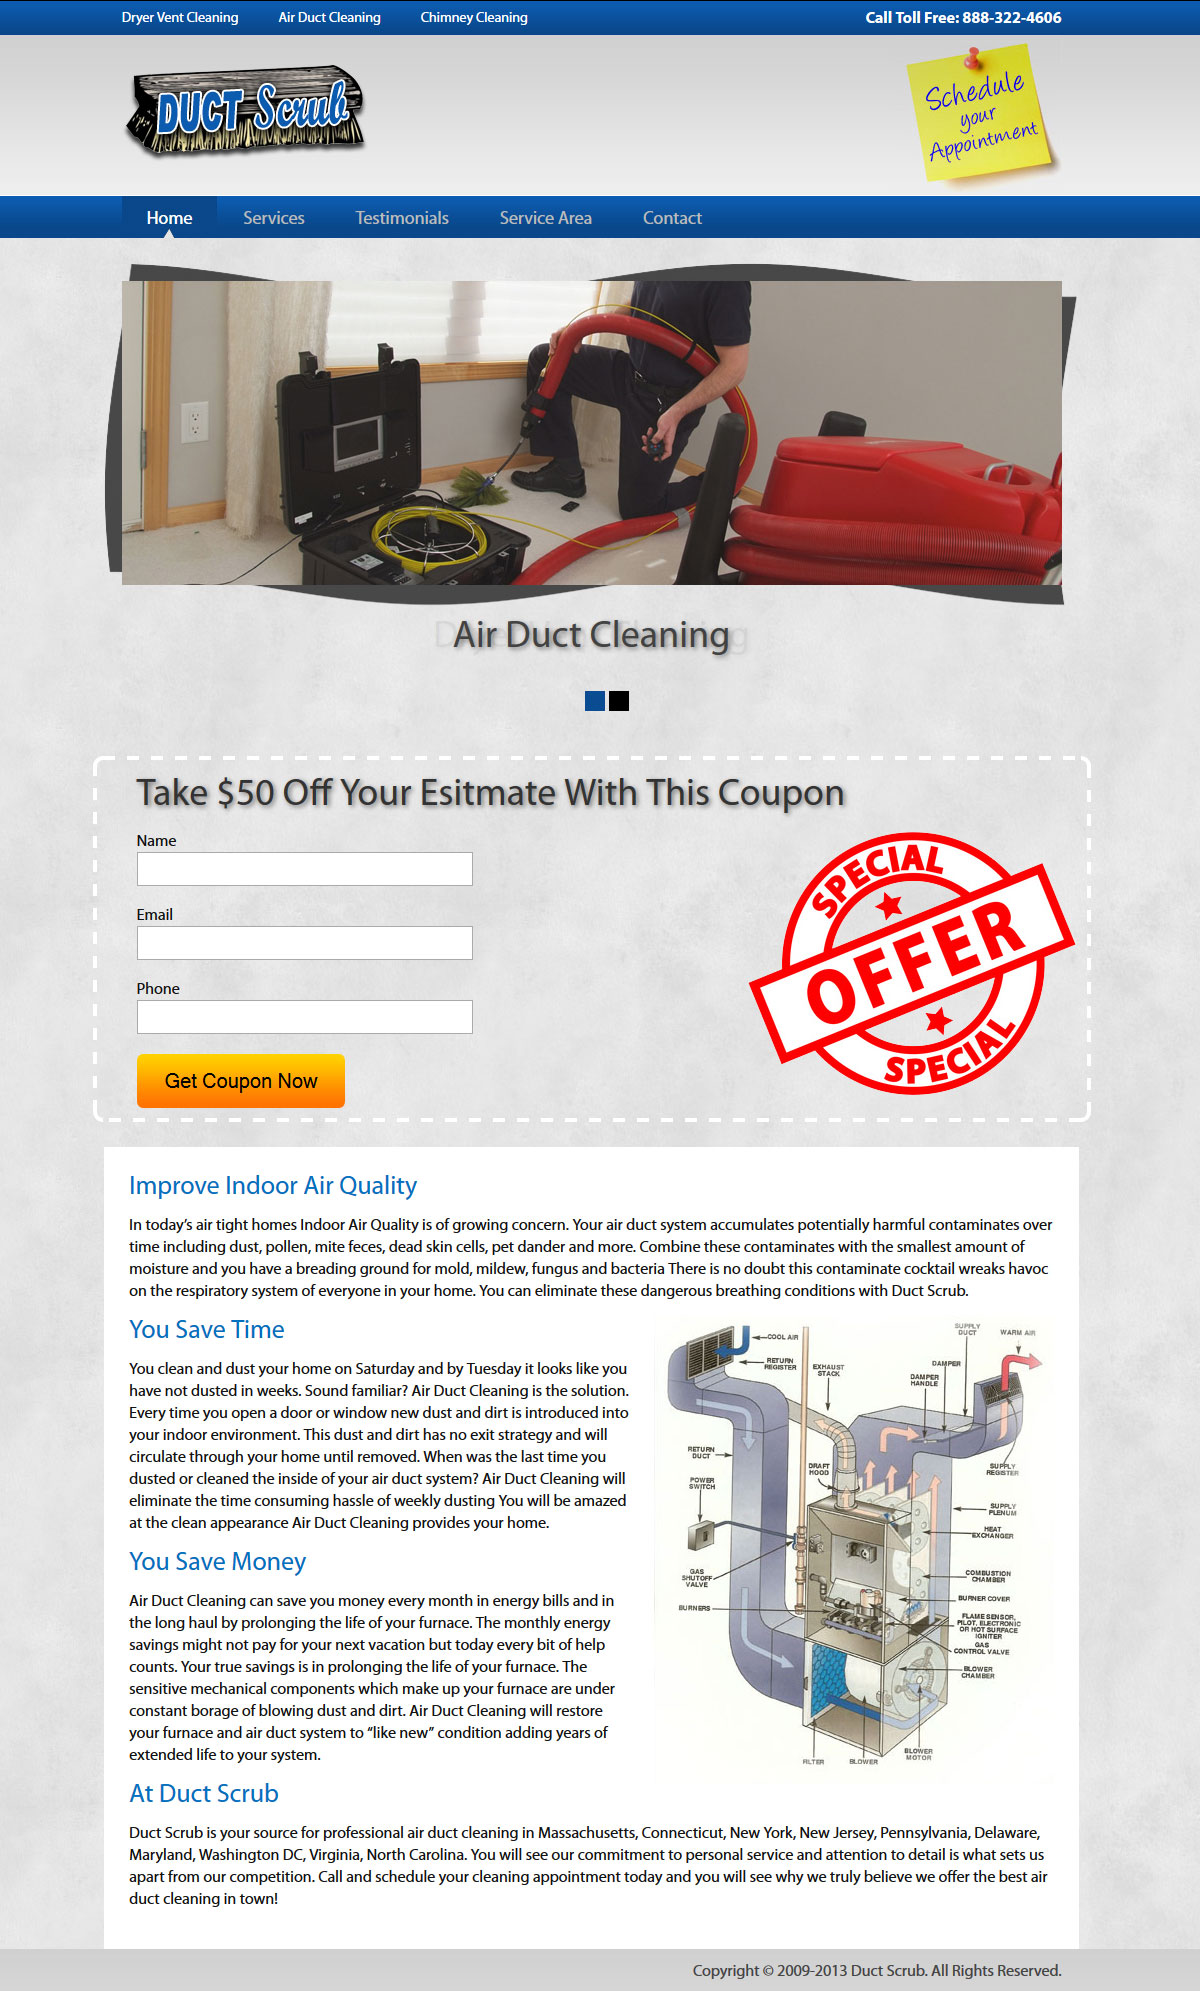 Duct Scrub Website Design & Development